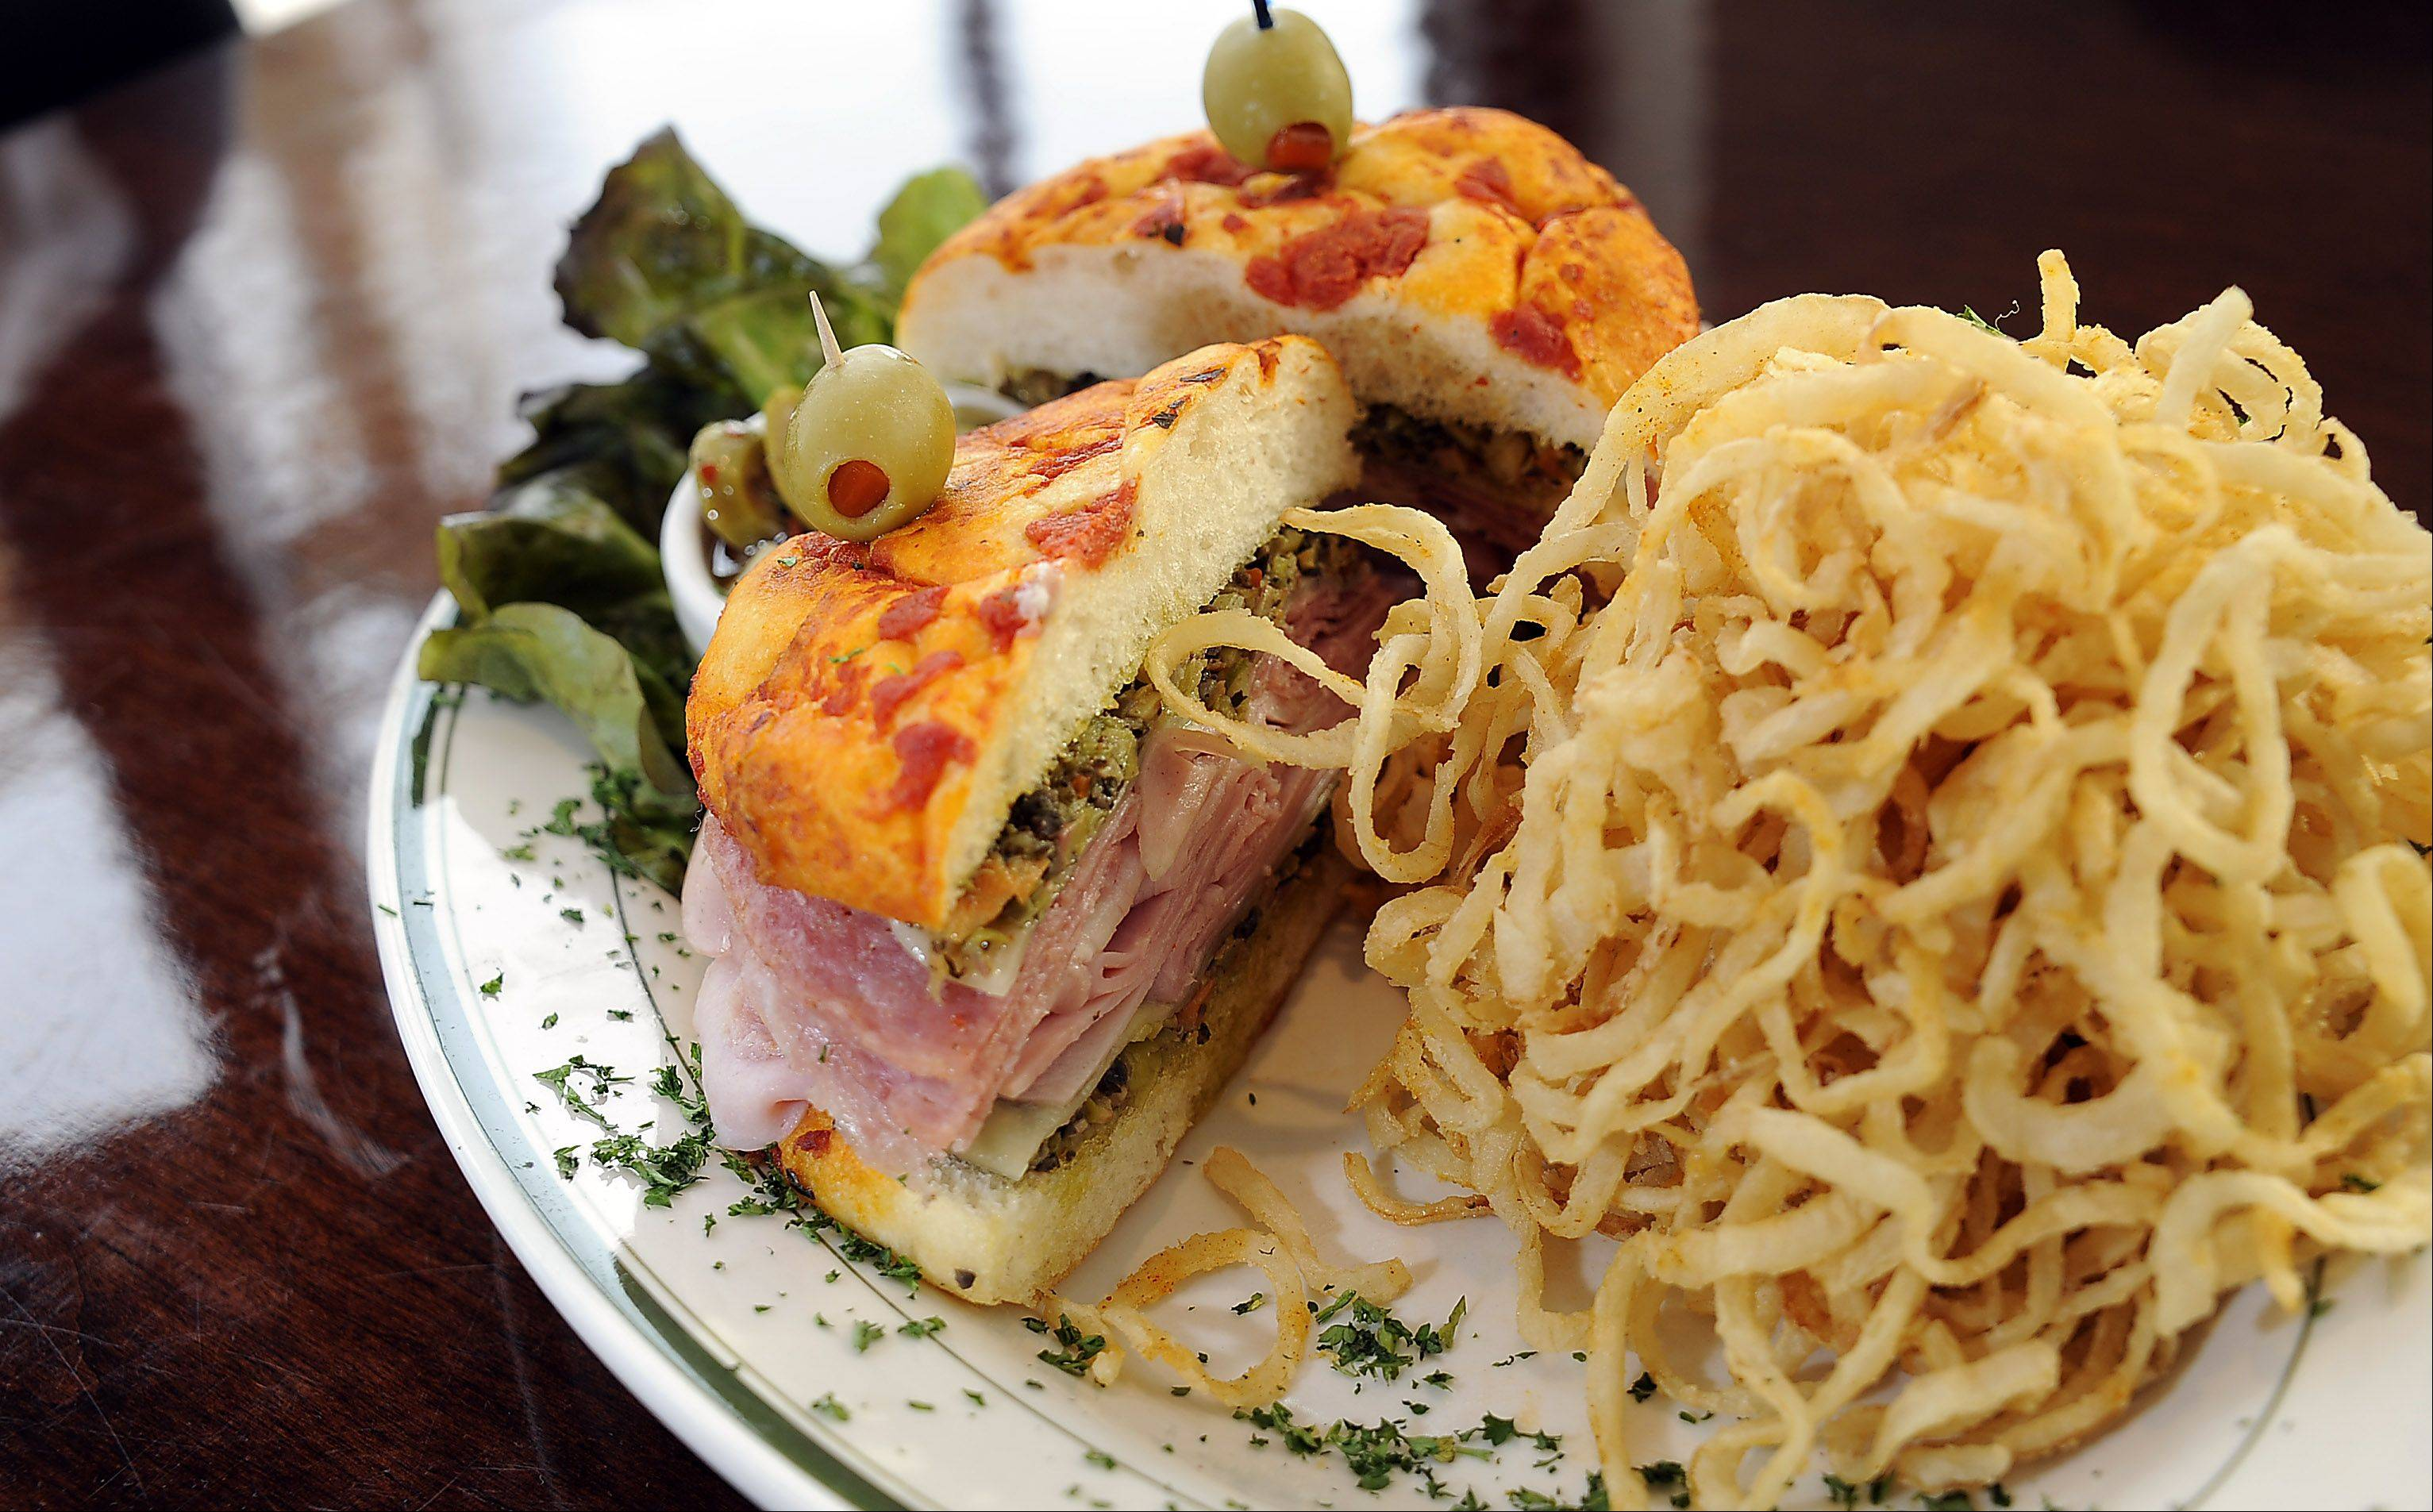 Muffaletta is one of the several sandwiches on Stone Eagle Tavern's expansive menu.